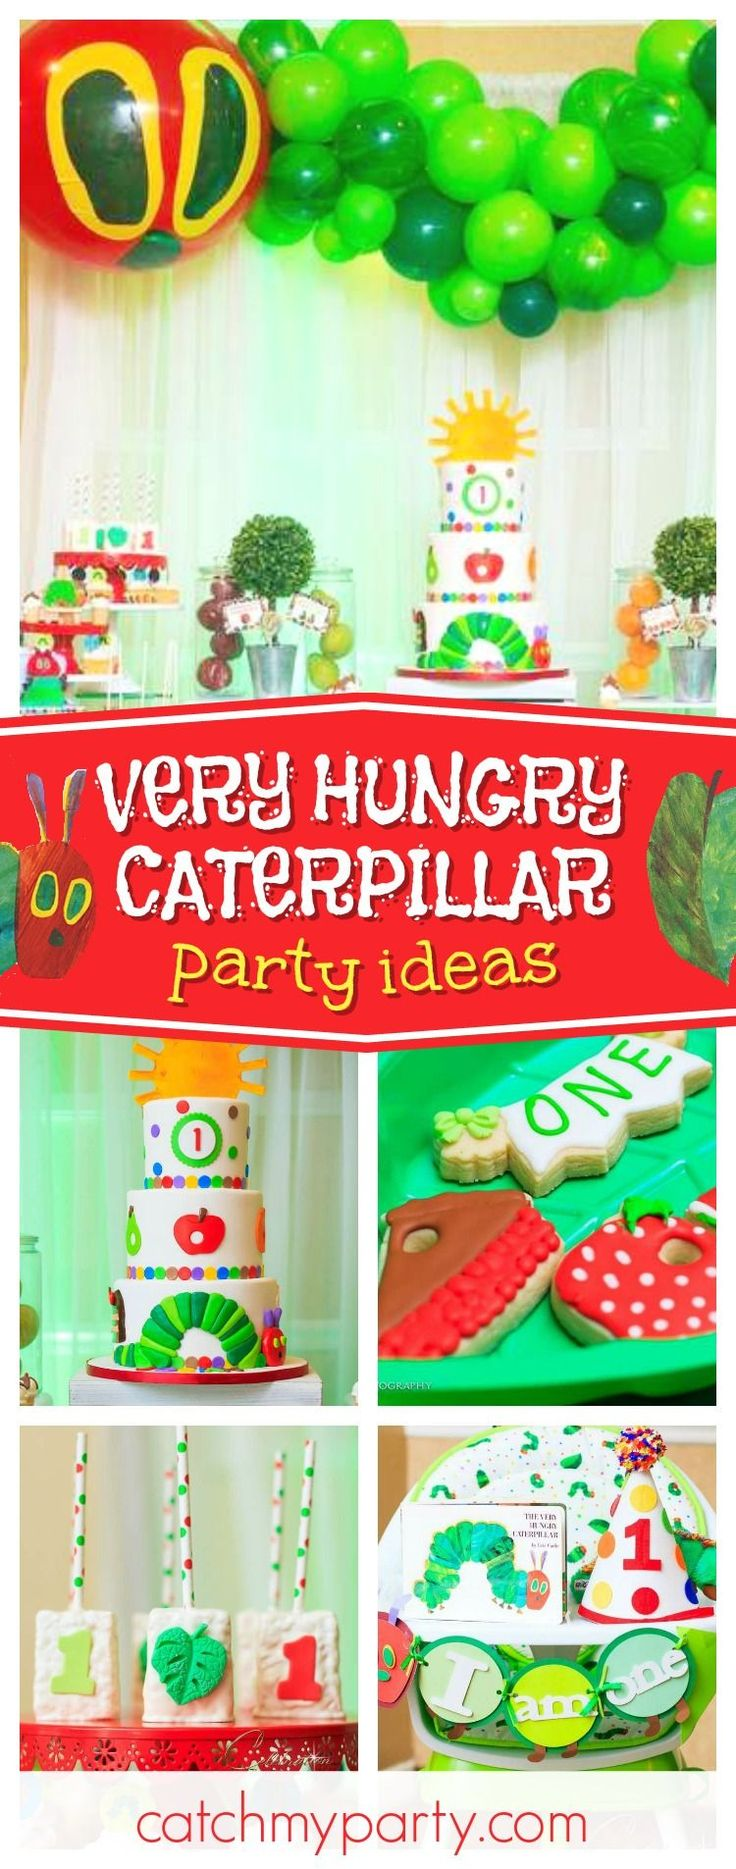 Don't miss this incredible Very Hungry Caterpillar 1st Birthday party! The birthday cake is amazing!! See more party ideas and share yours at CatchMyParty.com #catchmyparty #partyideas #veryhungrycaterpilar #1stbirthday